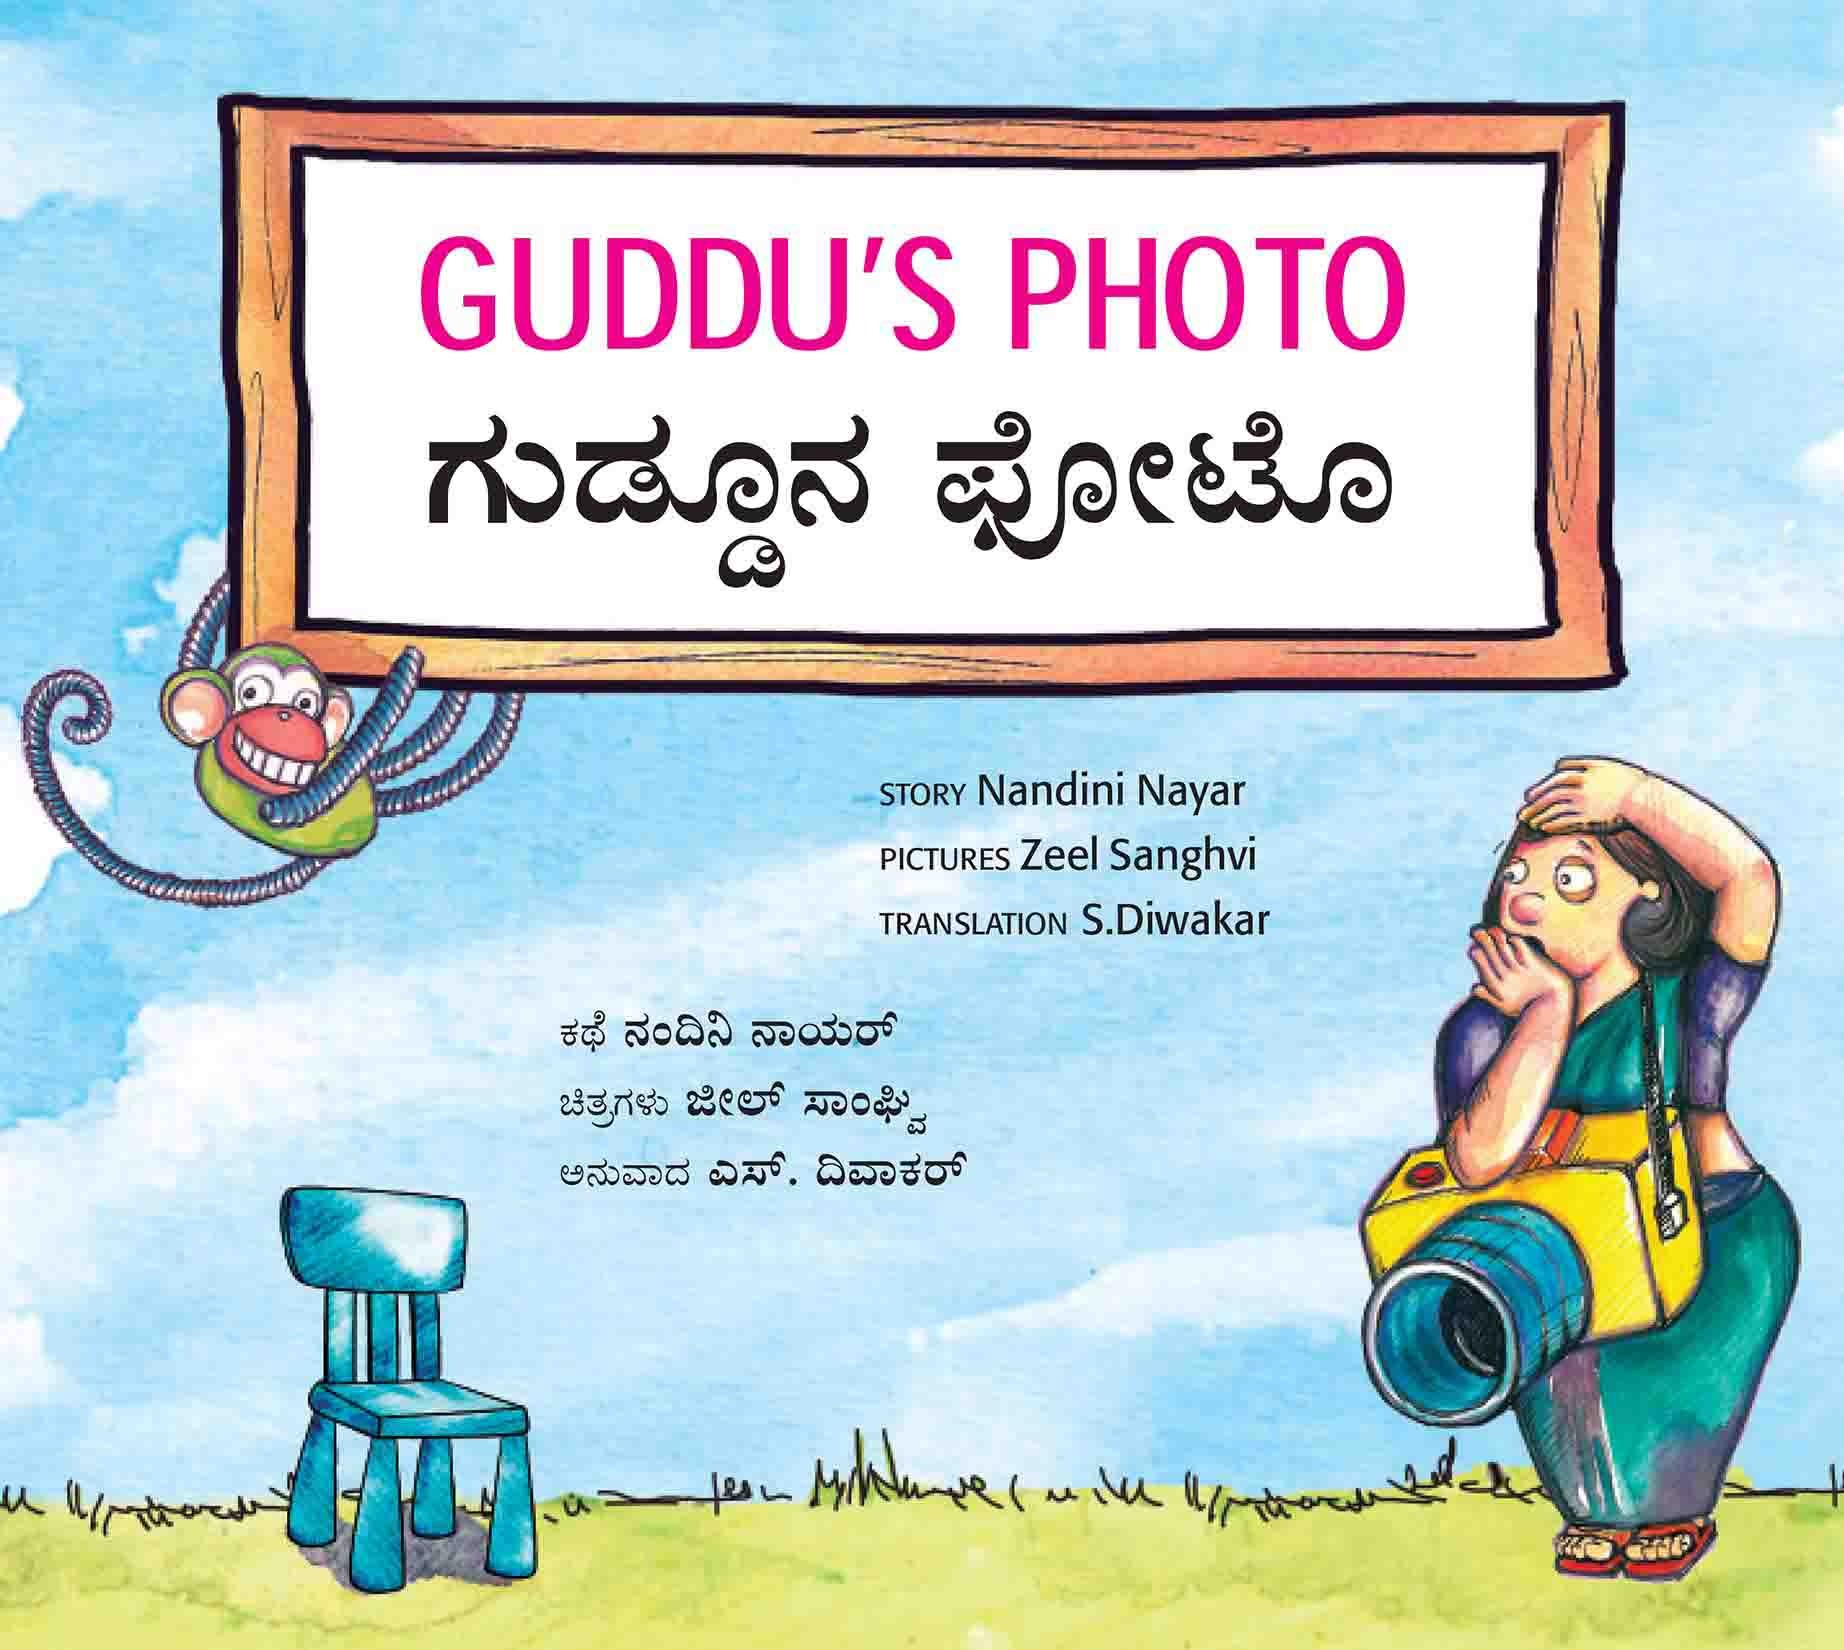 Guddu's Photo/Guddoona Photo (English-Kannada)